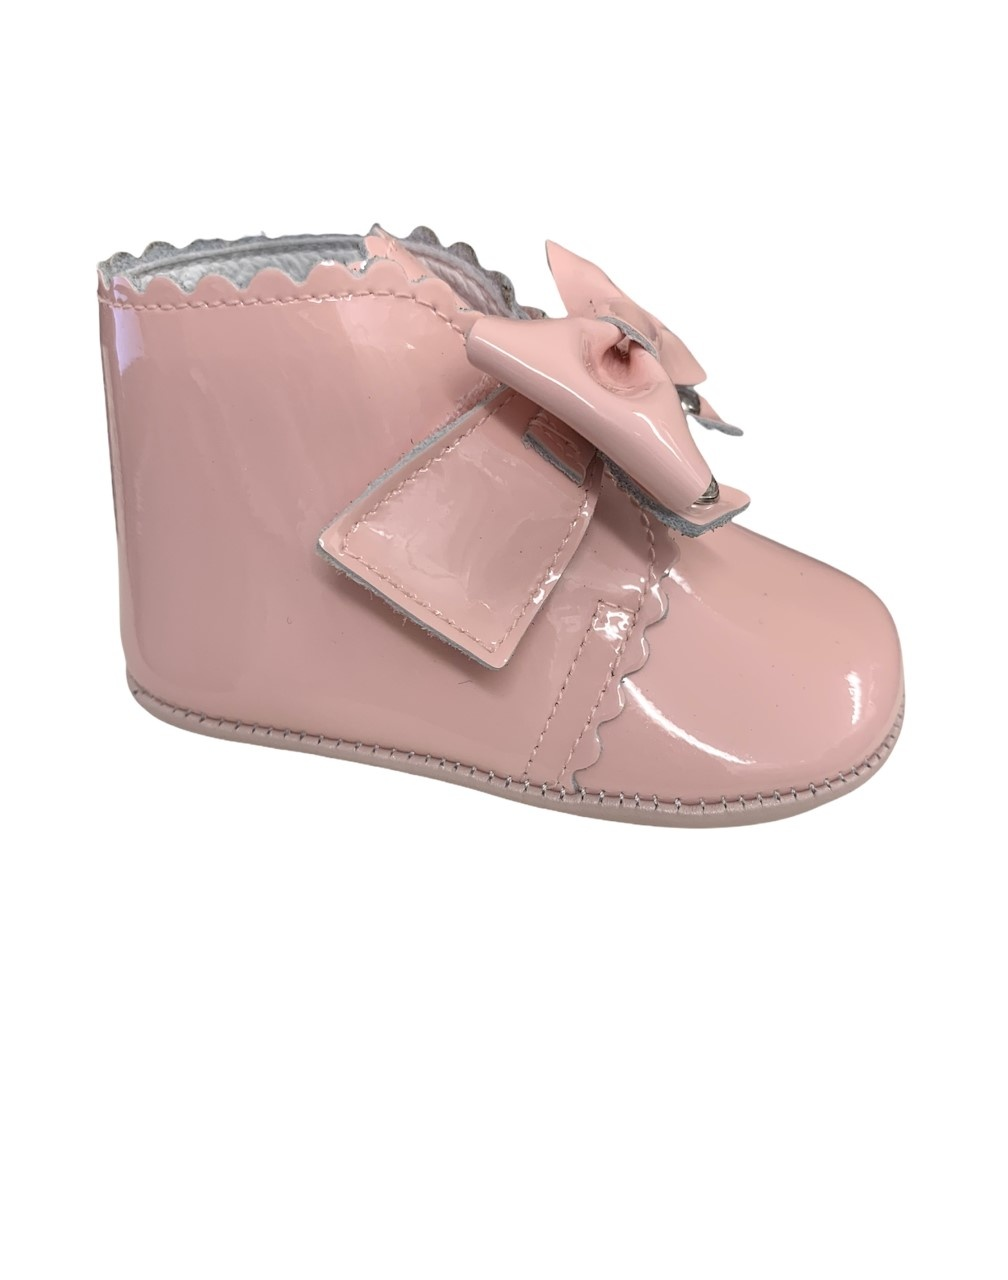 Andanines Andanines Pink Patent Pram Boot with Bow - 212034